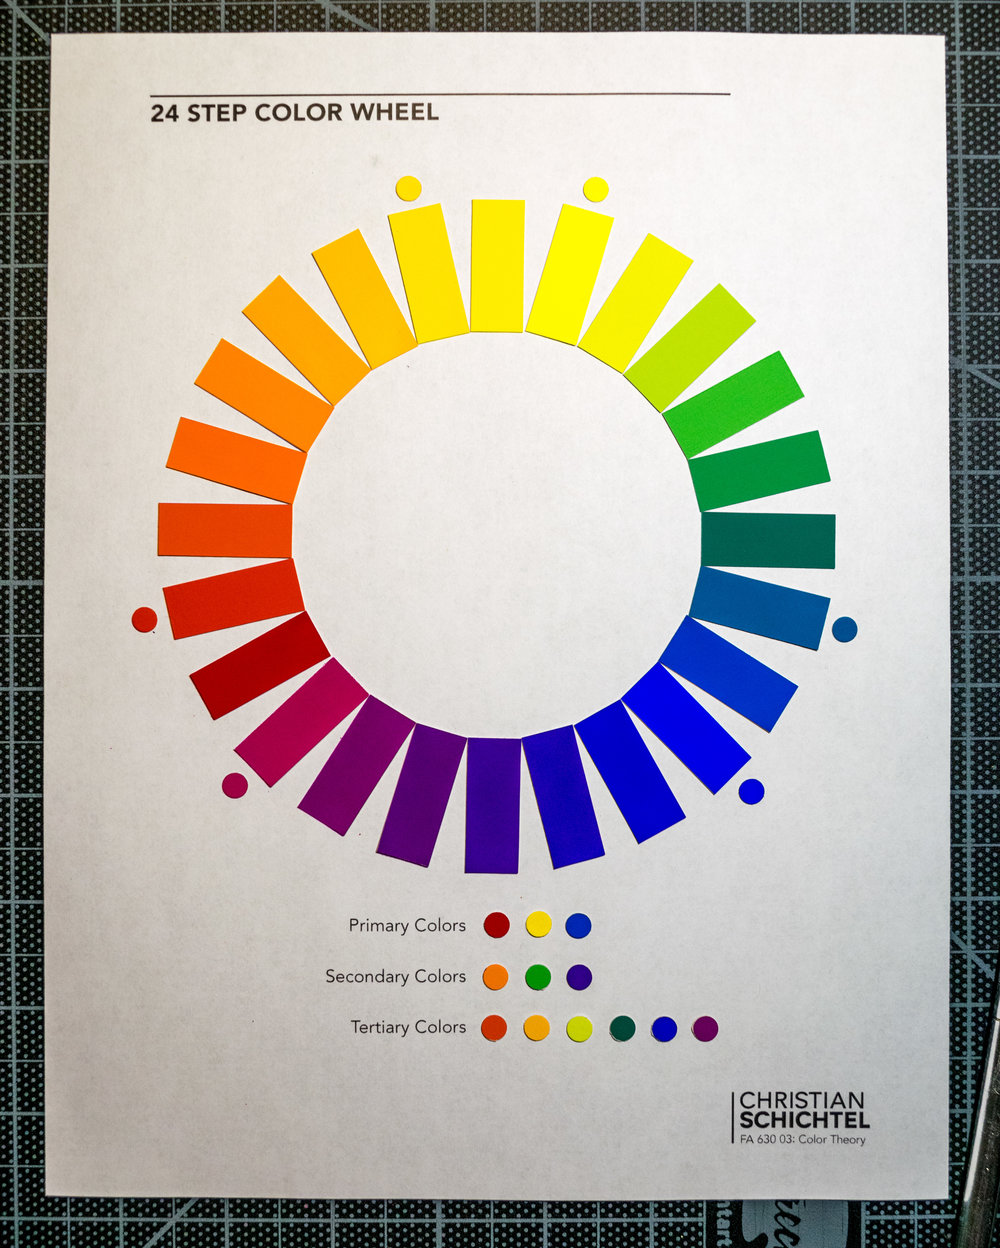 The completed 24 step color wheel. Those six dots next to the wheel indicate the base tube colors used to create the full range.